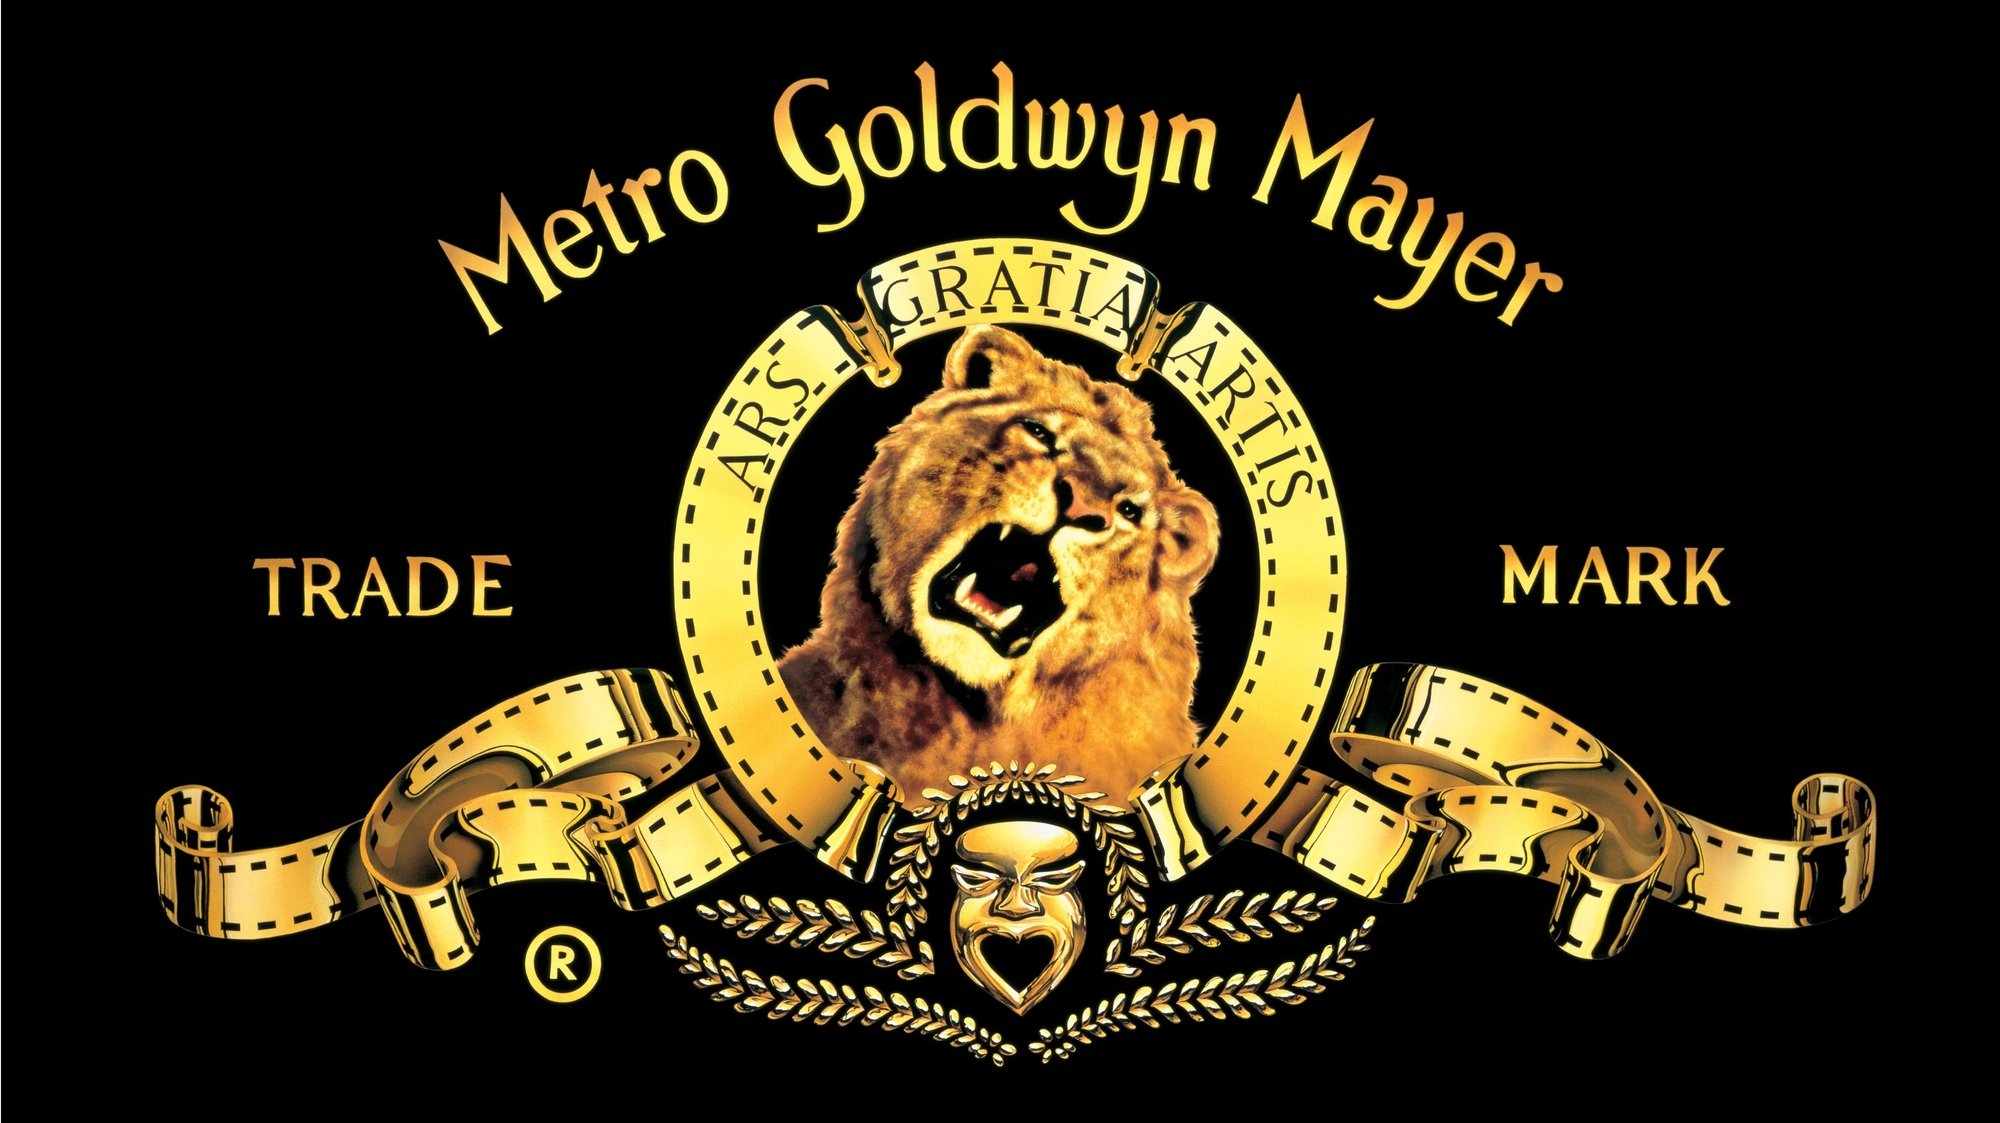 epa02428080 (FILE) A undated MGM handout of the MGM Studios Logo. Metro-Goldwyn-Mayer has filed for bankruptcy protection early 03 November 2010 it was announced. The debt-ridden company, once Hollywood's most powerful studio, filed for insolvency after it could no longer pay its debts or create and release new movies.  EPA/MGM / HANDOUT  EDITORIAL USE ONLY/NO SALES